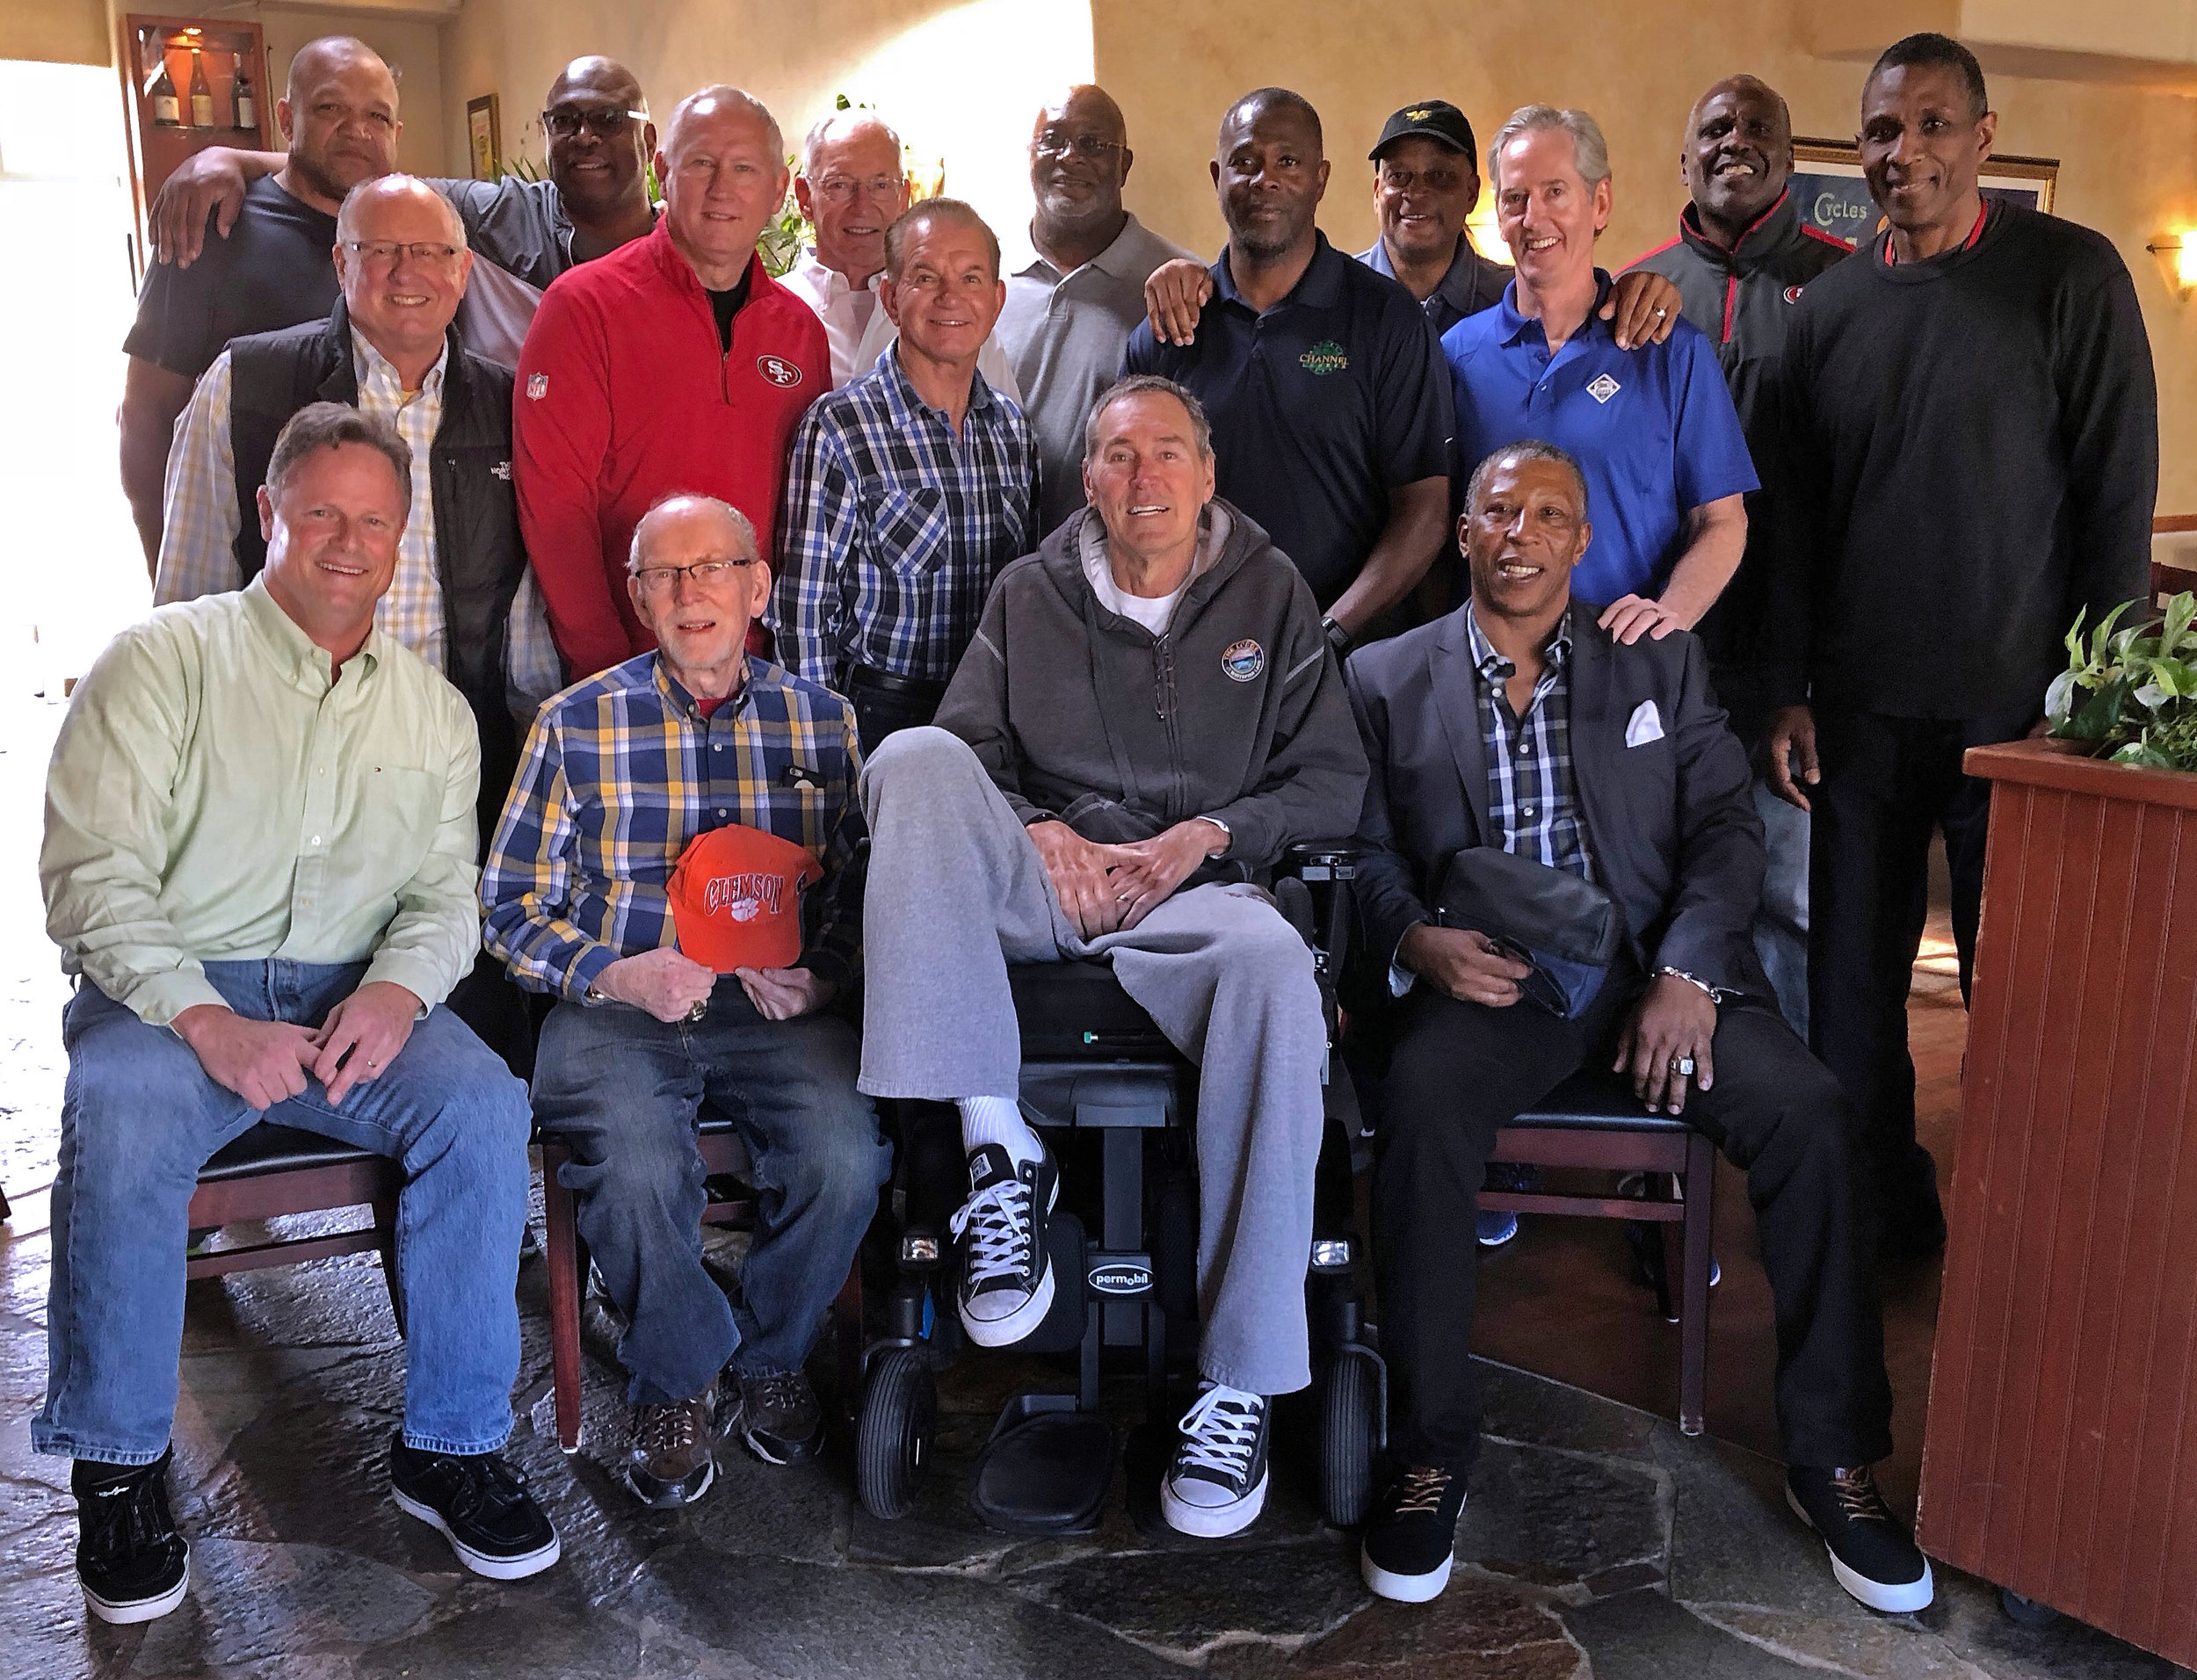 Dwight Clark gathers with teammates, coaches, and friends before lunch in Capitola, California, on March 6, 2018.